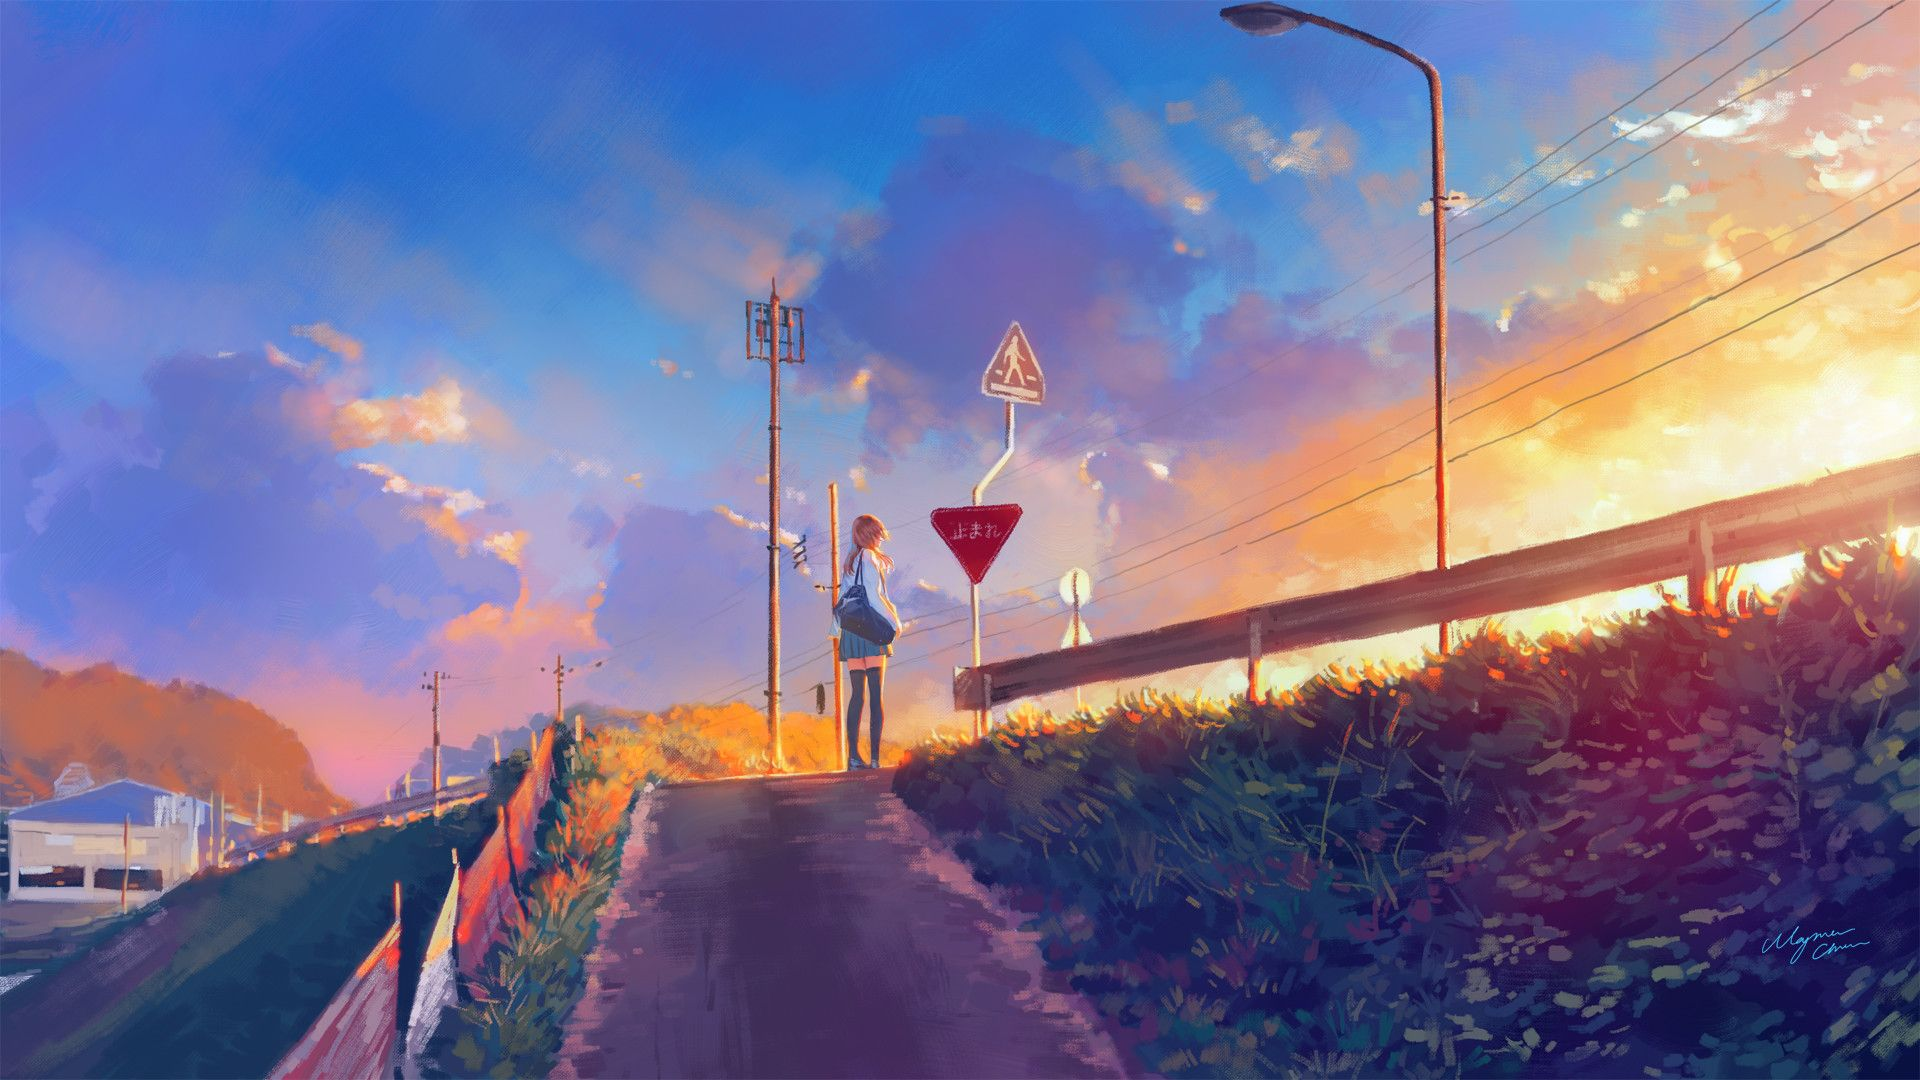 Anime Sunset By Wayne Chan Anime Scenery Sky Anime Background Images